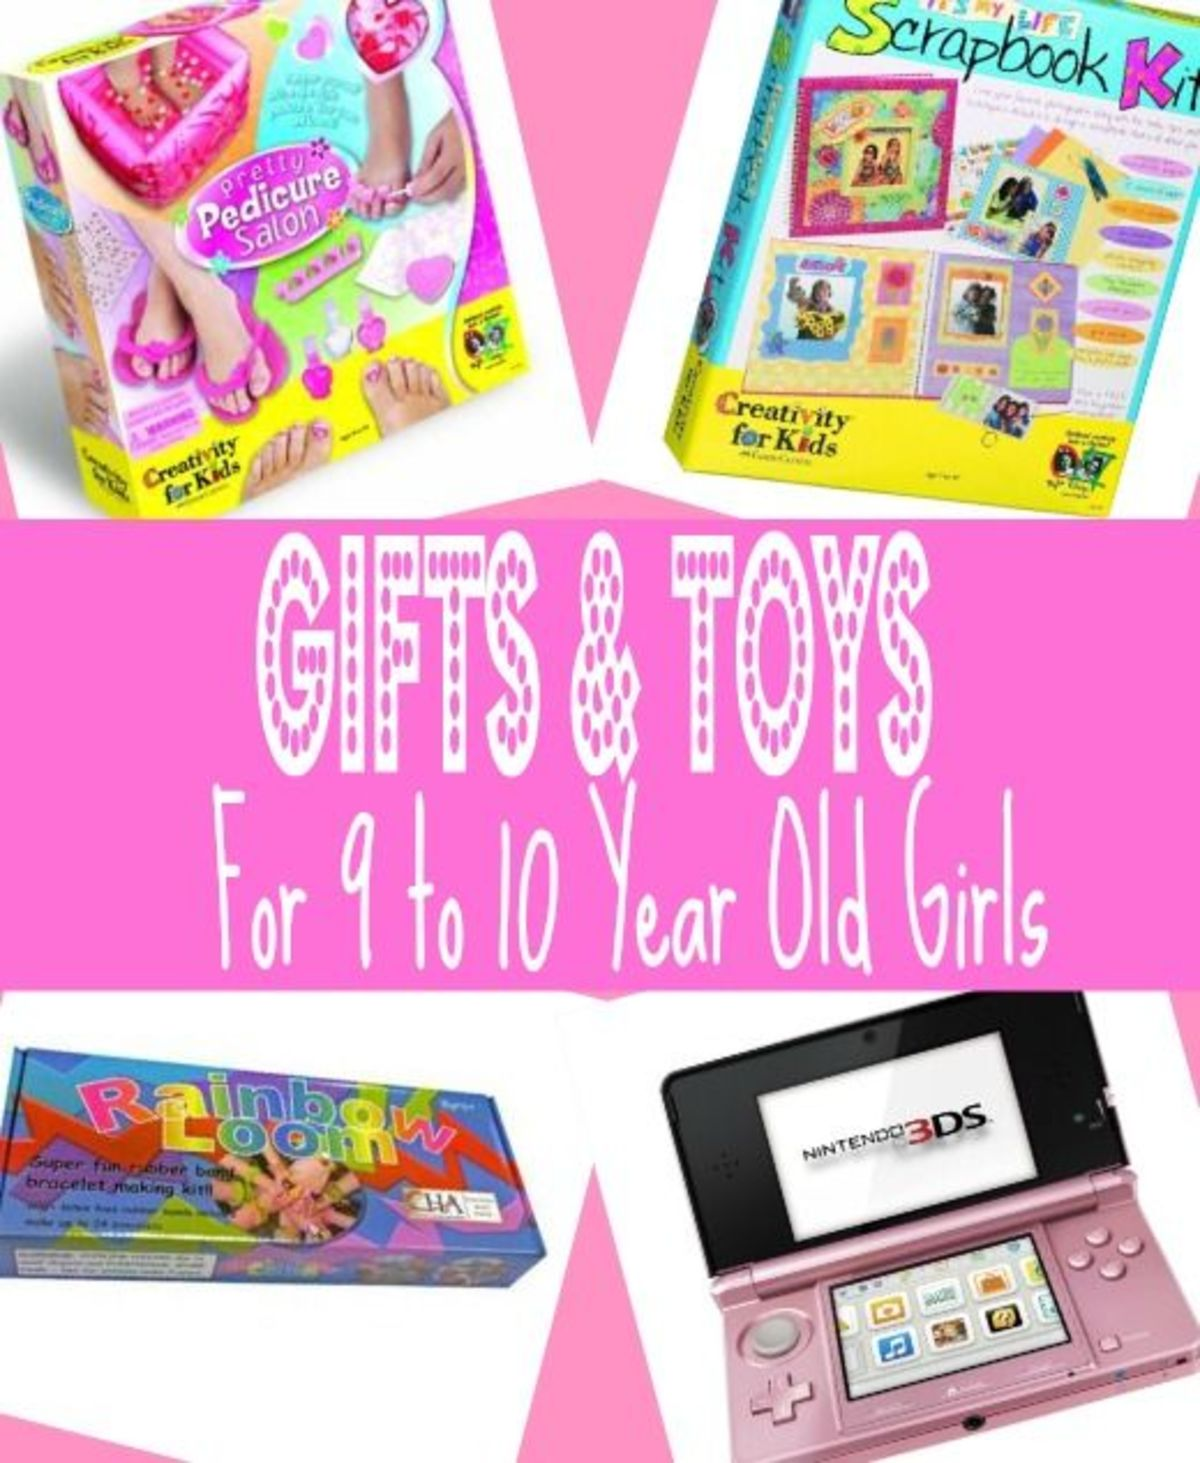 Best Toys Gift Ideas For 9 Year Old Girls In 2018: Best Unique Gift Ideas For A 9 Year Old Girl